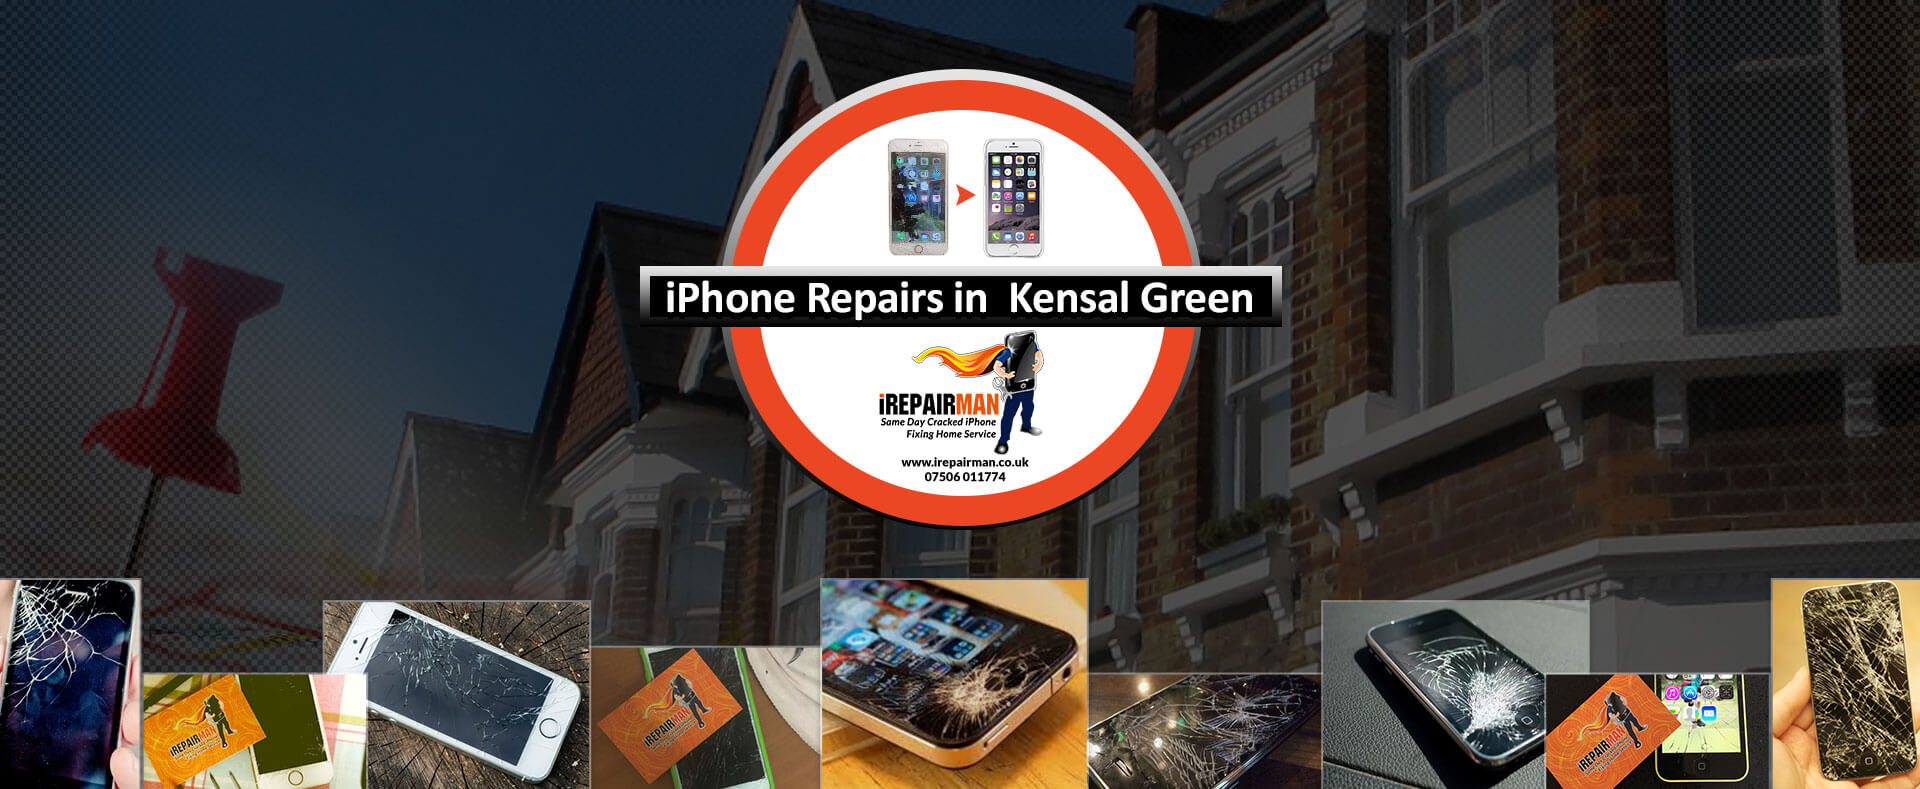 iPhone Repairs in Kensal Green